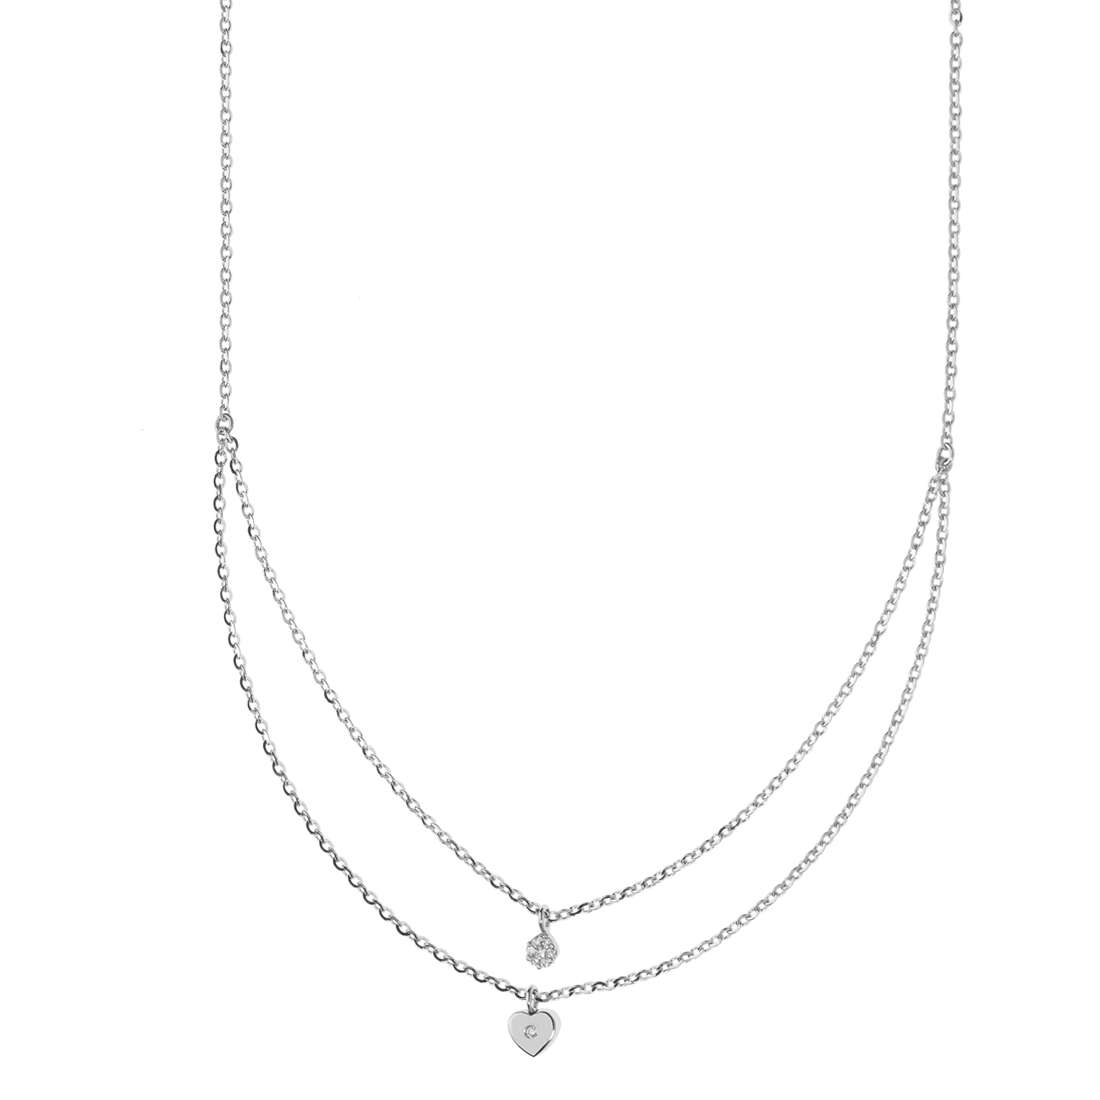 necklace woman jewellery Comete Fantasie di diamanti GLB 1326